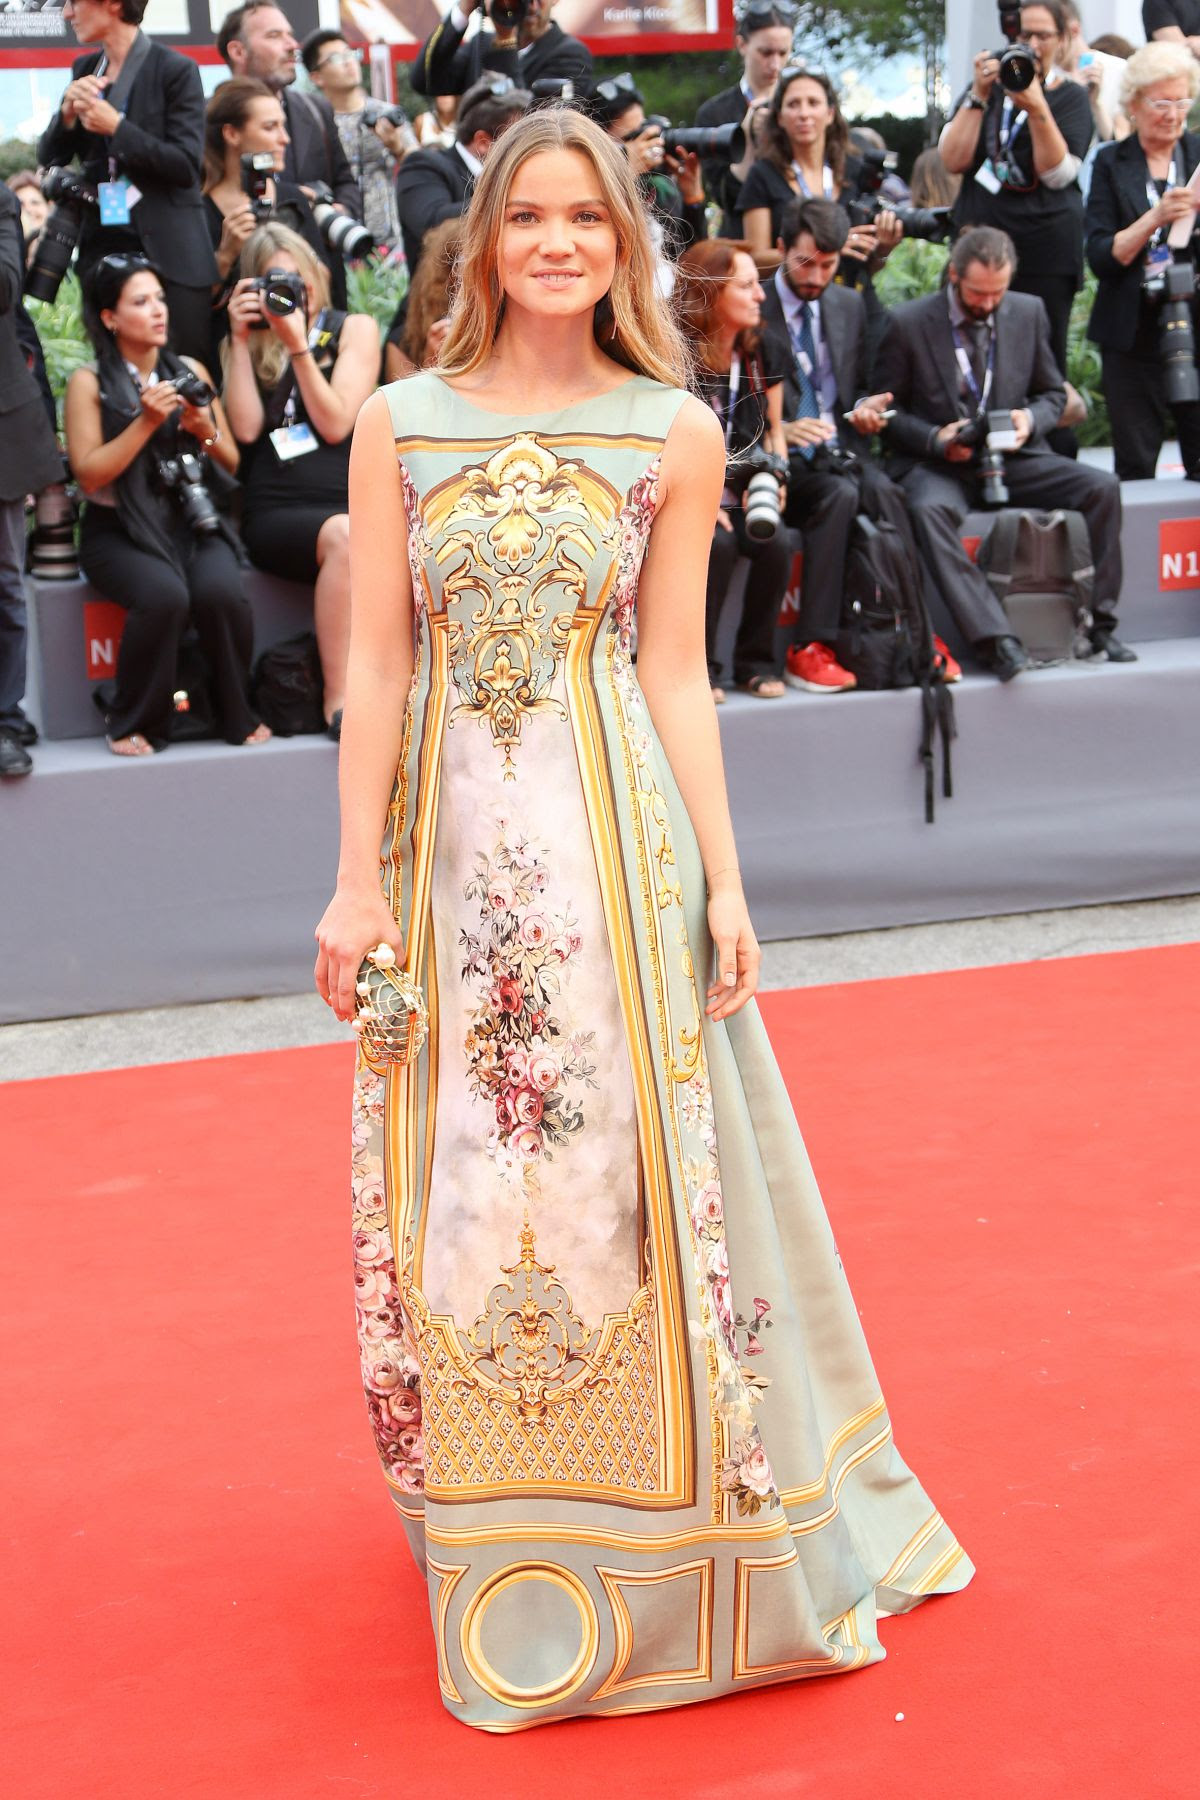 http://www.hawtcelebs.com/wp-content/uploads/2015/09/fiammetta-cicogna-at-everest-premiere-and-72nd-venice-film-festival-opening-ceremony_5.jpg